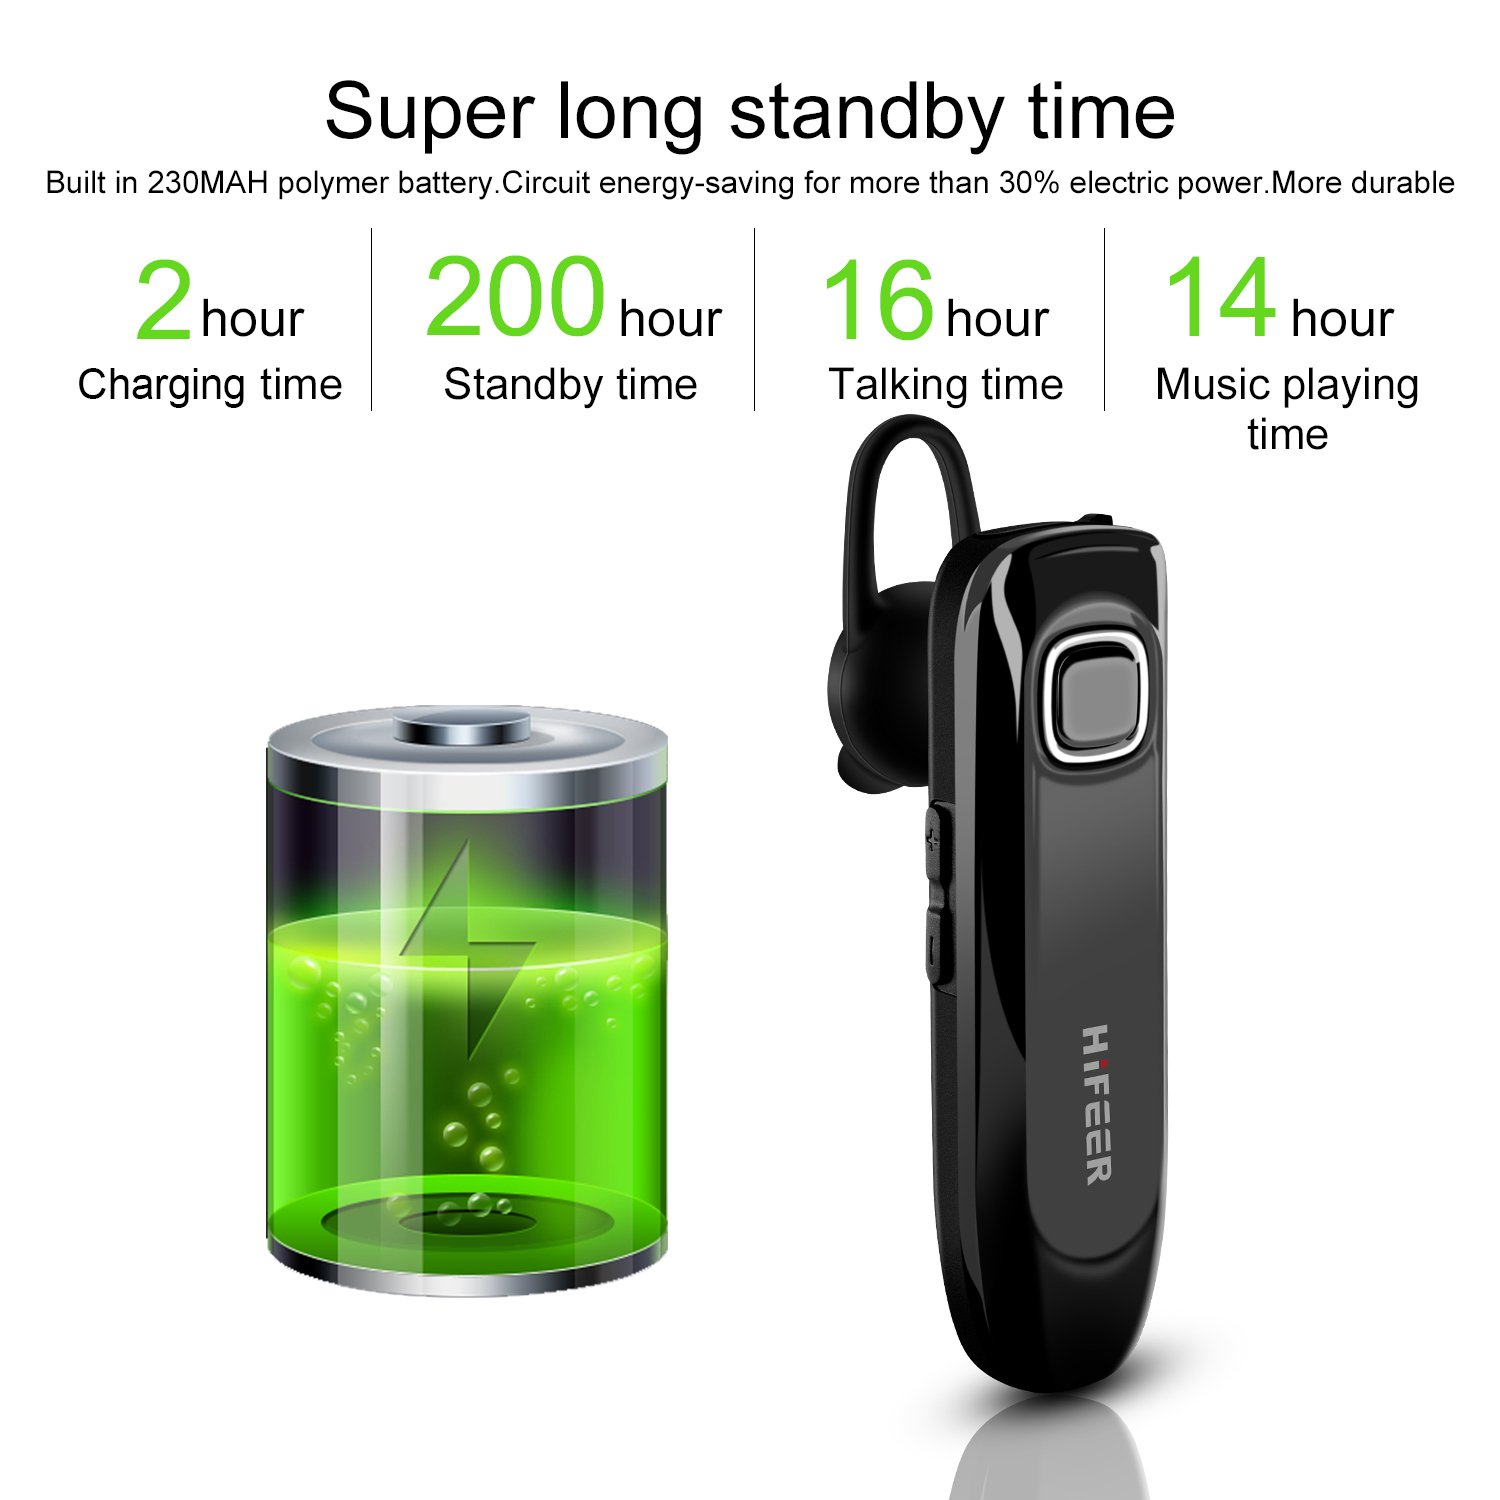 Hifeer Bluetooth Headset Waterproof Ipx5 V41 Telephone Circuit Music On Hold Headphone With Noise Cancelling Mic Black Cell Phones Accessories